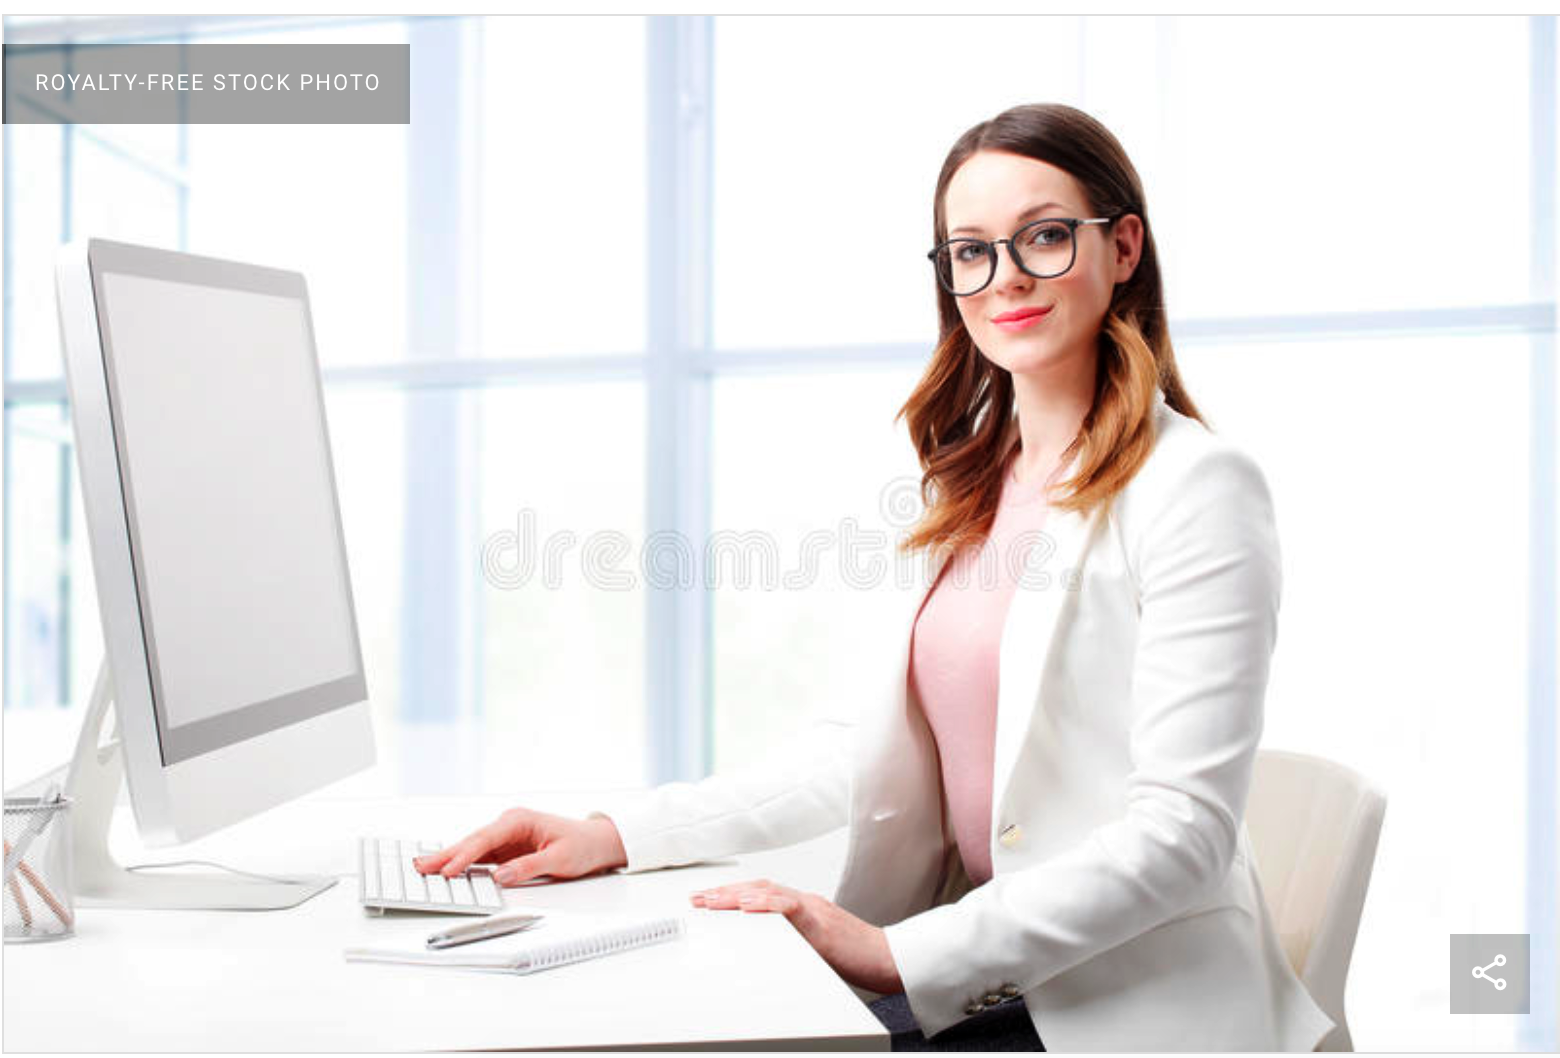 Dreamstime Example of a model office setting